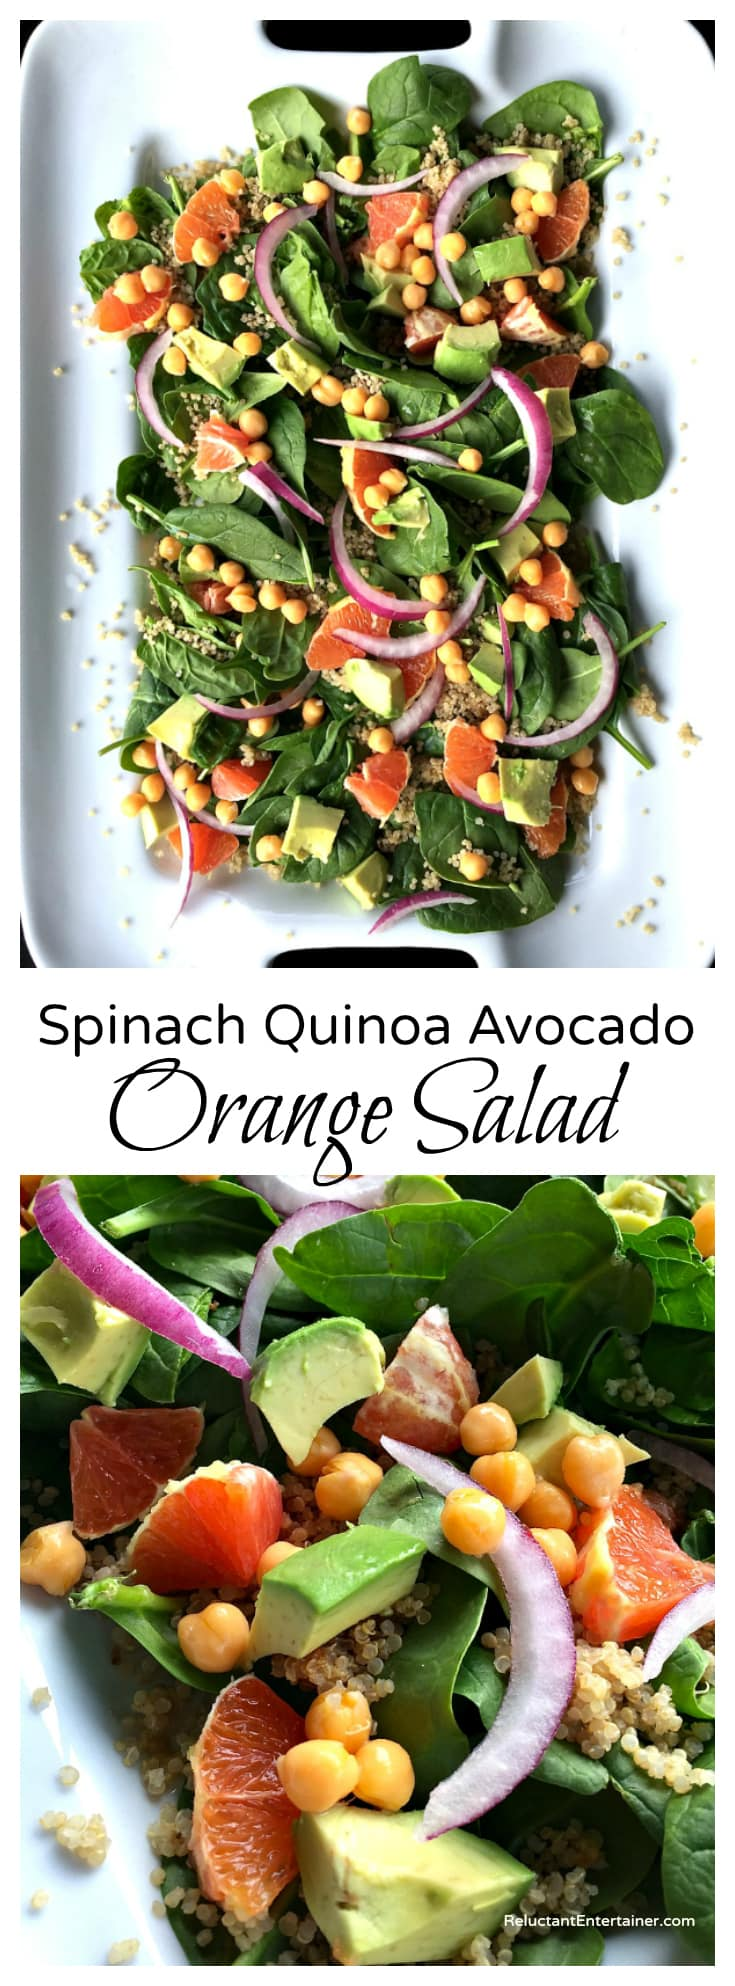 Spinach Quinoa Avocado Orange Salad